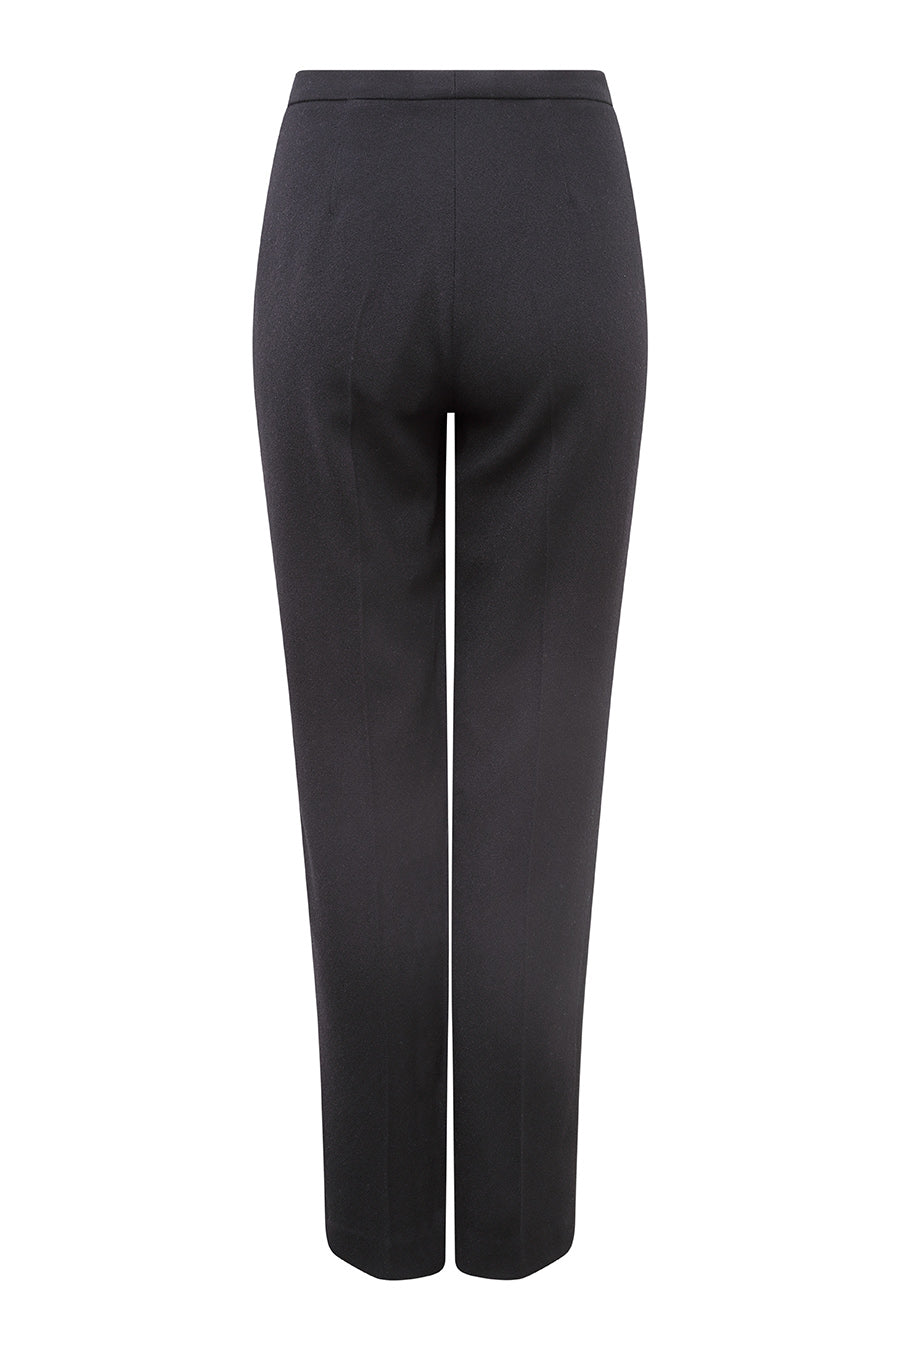 Narrow Leg Cigarette Trousers in Black Wool Crepe